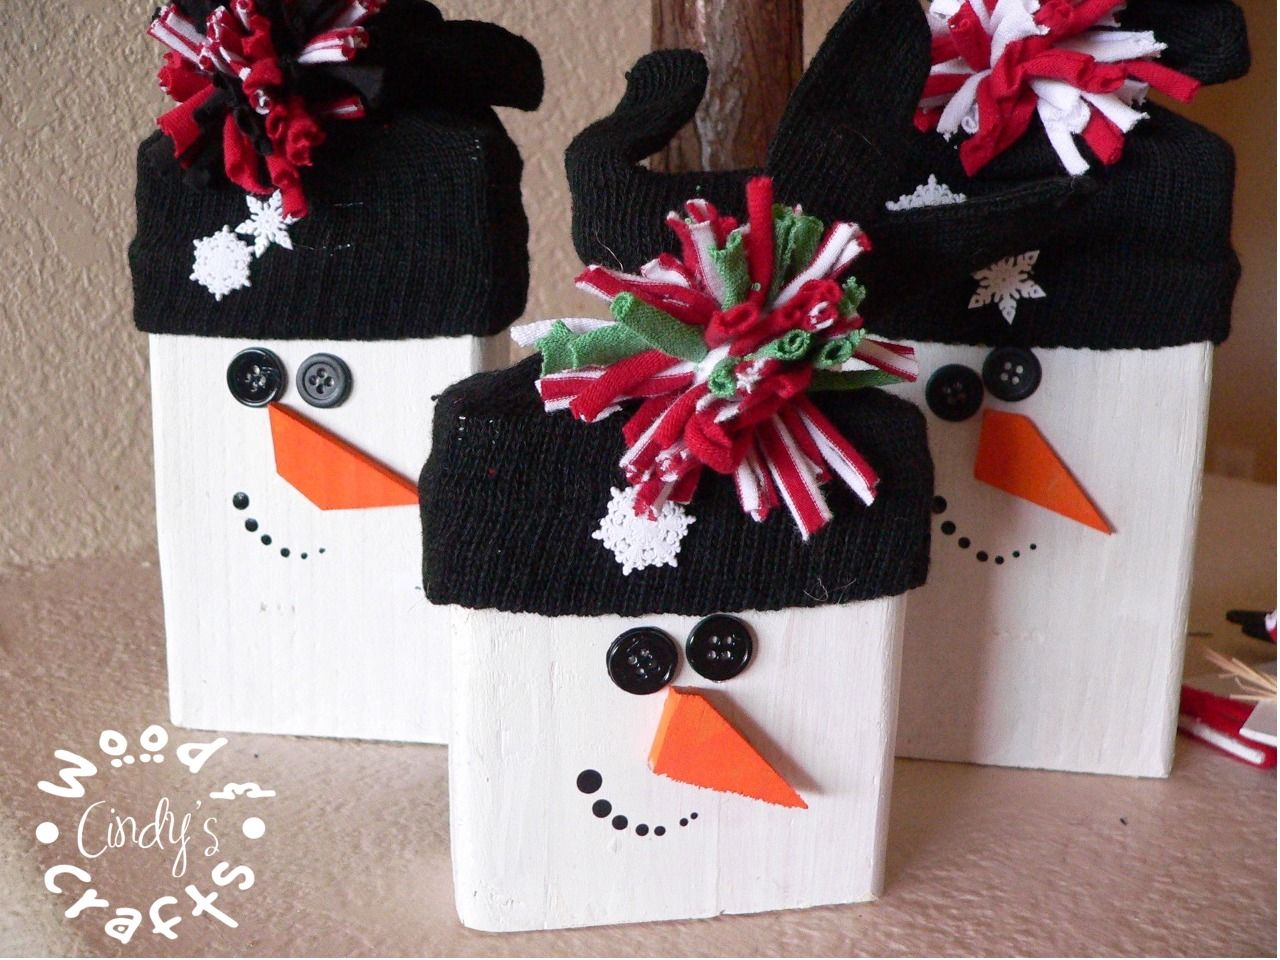 Our Unschooling Journey Through Life Christmas Crafts For